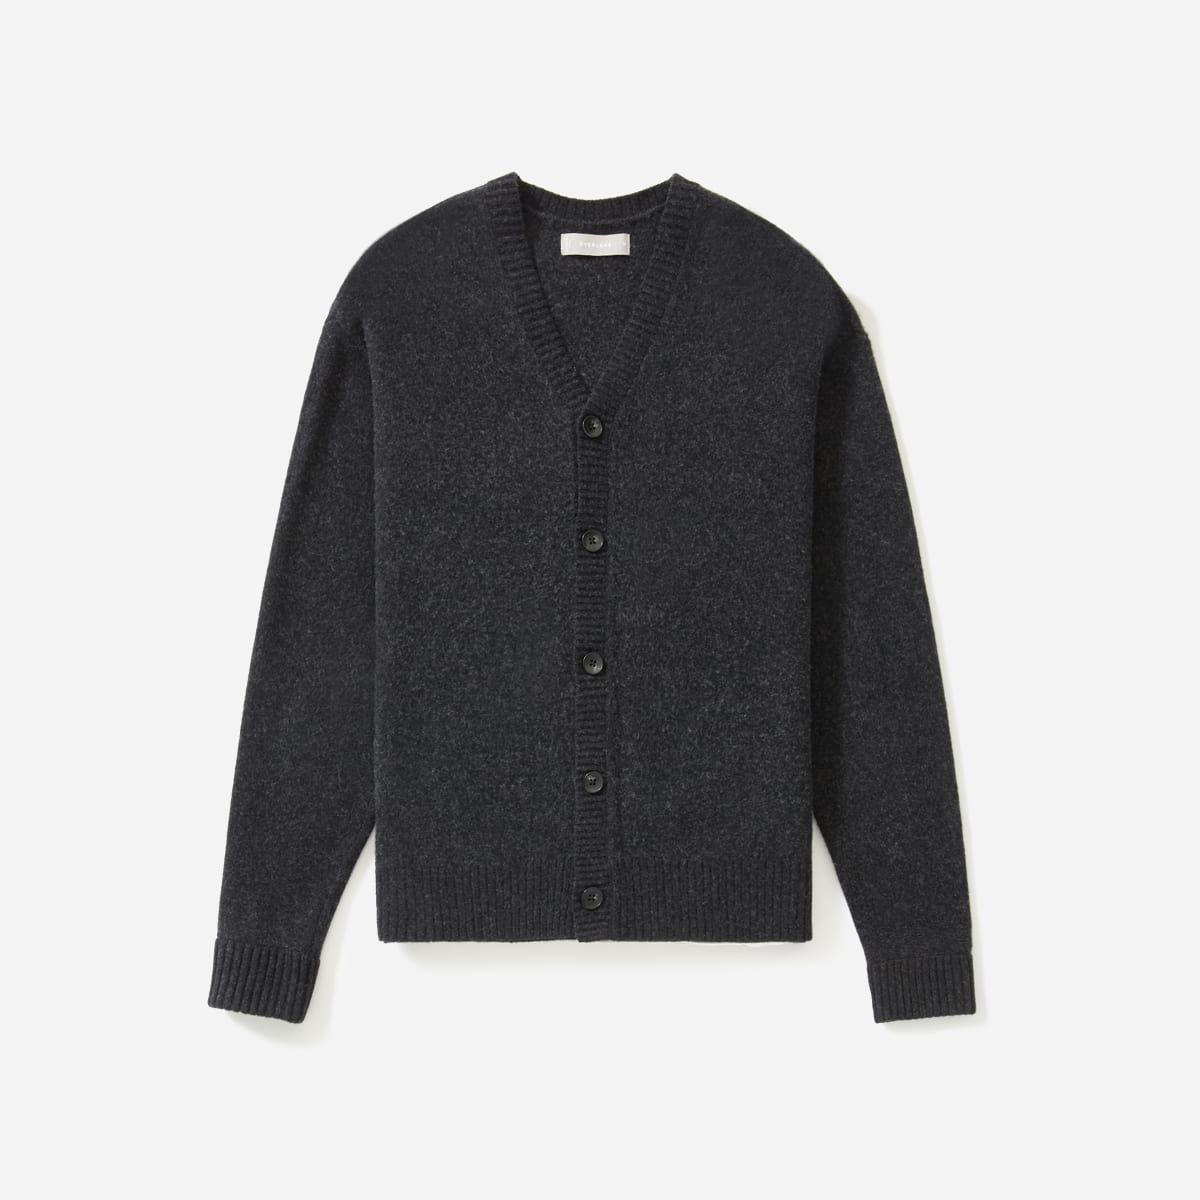 Everlane Felted Merino Cardigan